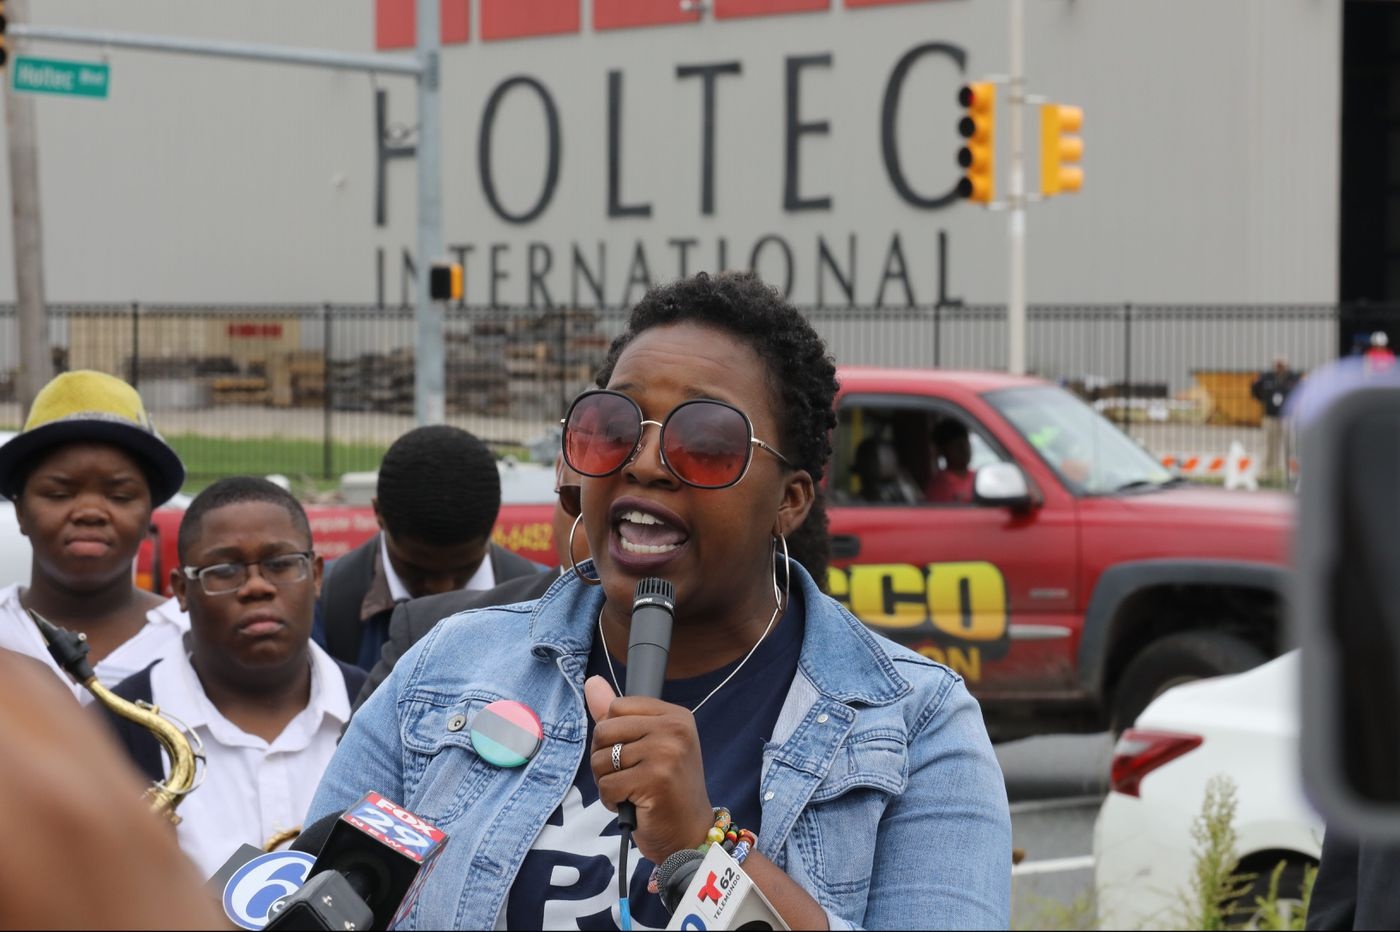 Protesters demand apology from Holtec CEO for calling Camden workers lazy